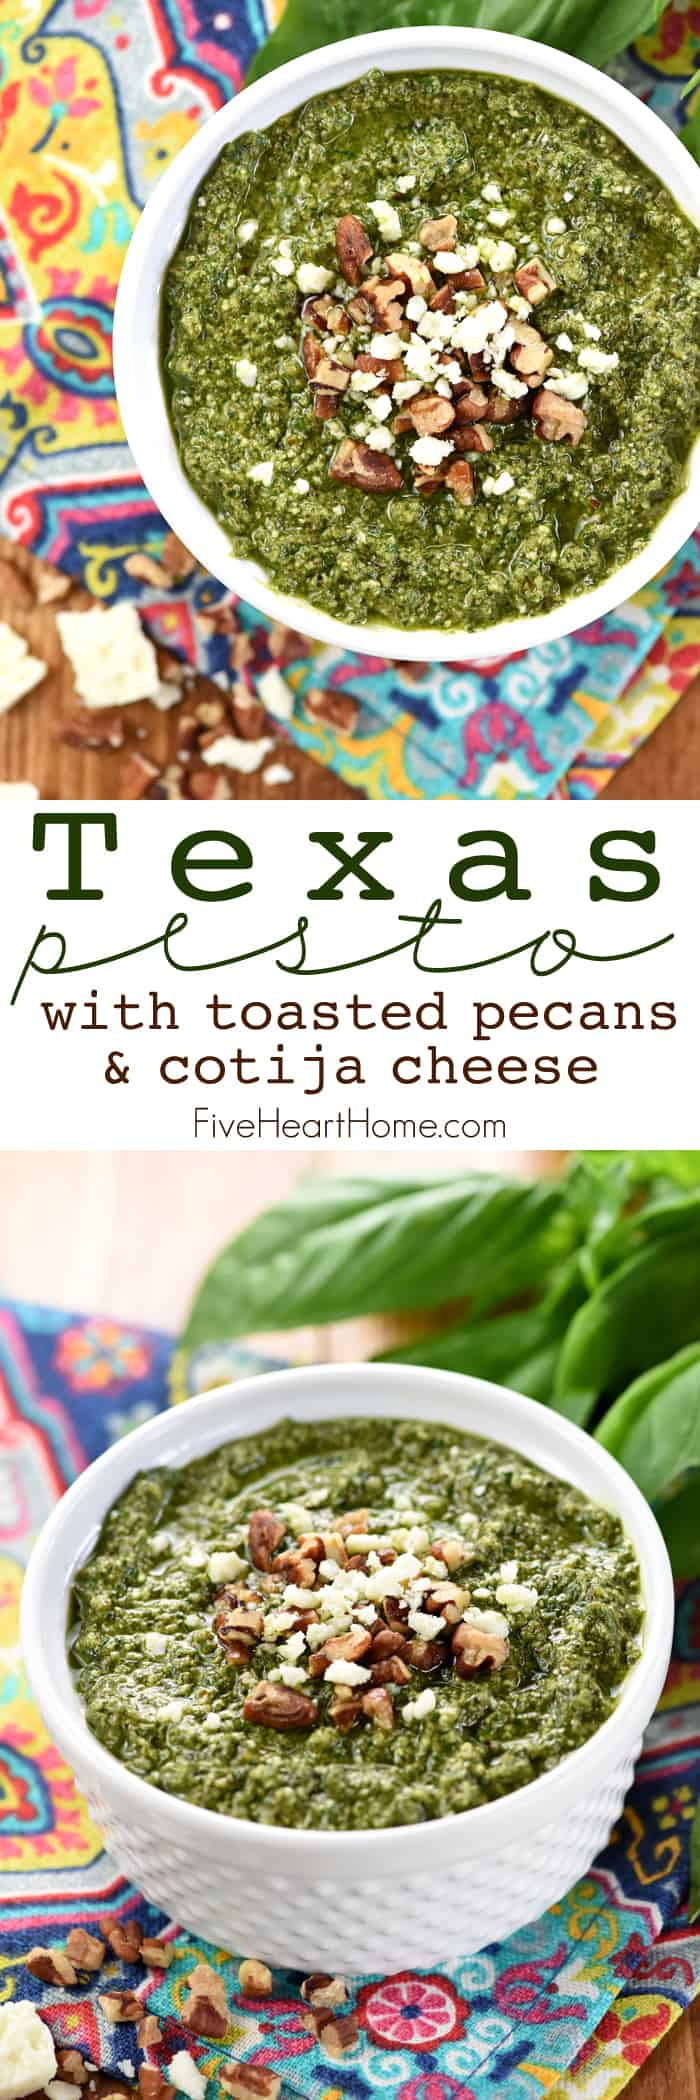 Texas Pesto ~ traditional pesto gets a Texas twist in this flavorful recipe featuring toasted pecans and Cotija cheese, perfect for slathering on bruschetta, tossing with pasta, jazzing up veggies, and so much more! | FiveHeartHome.com